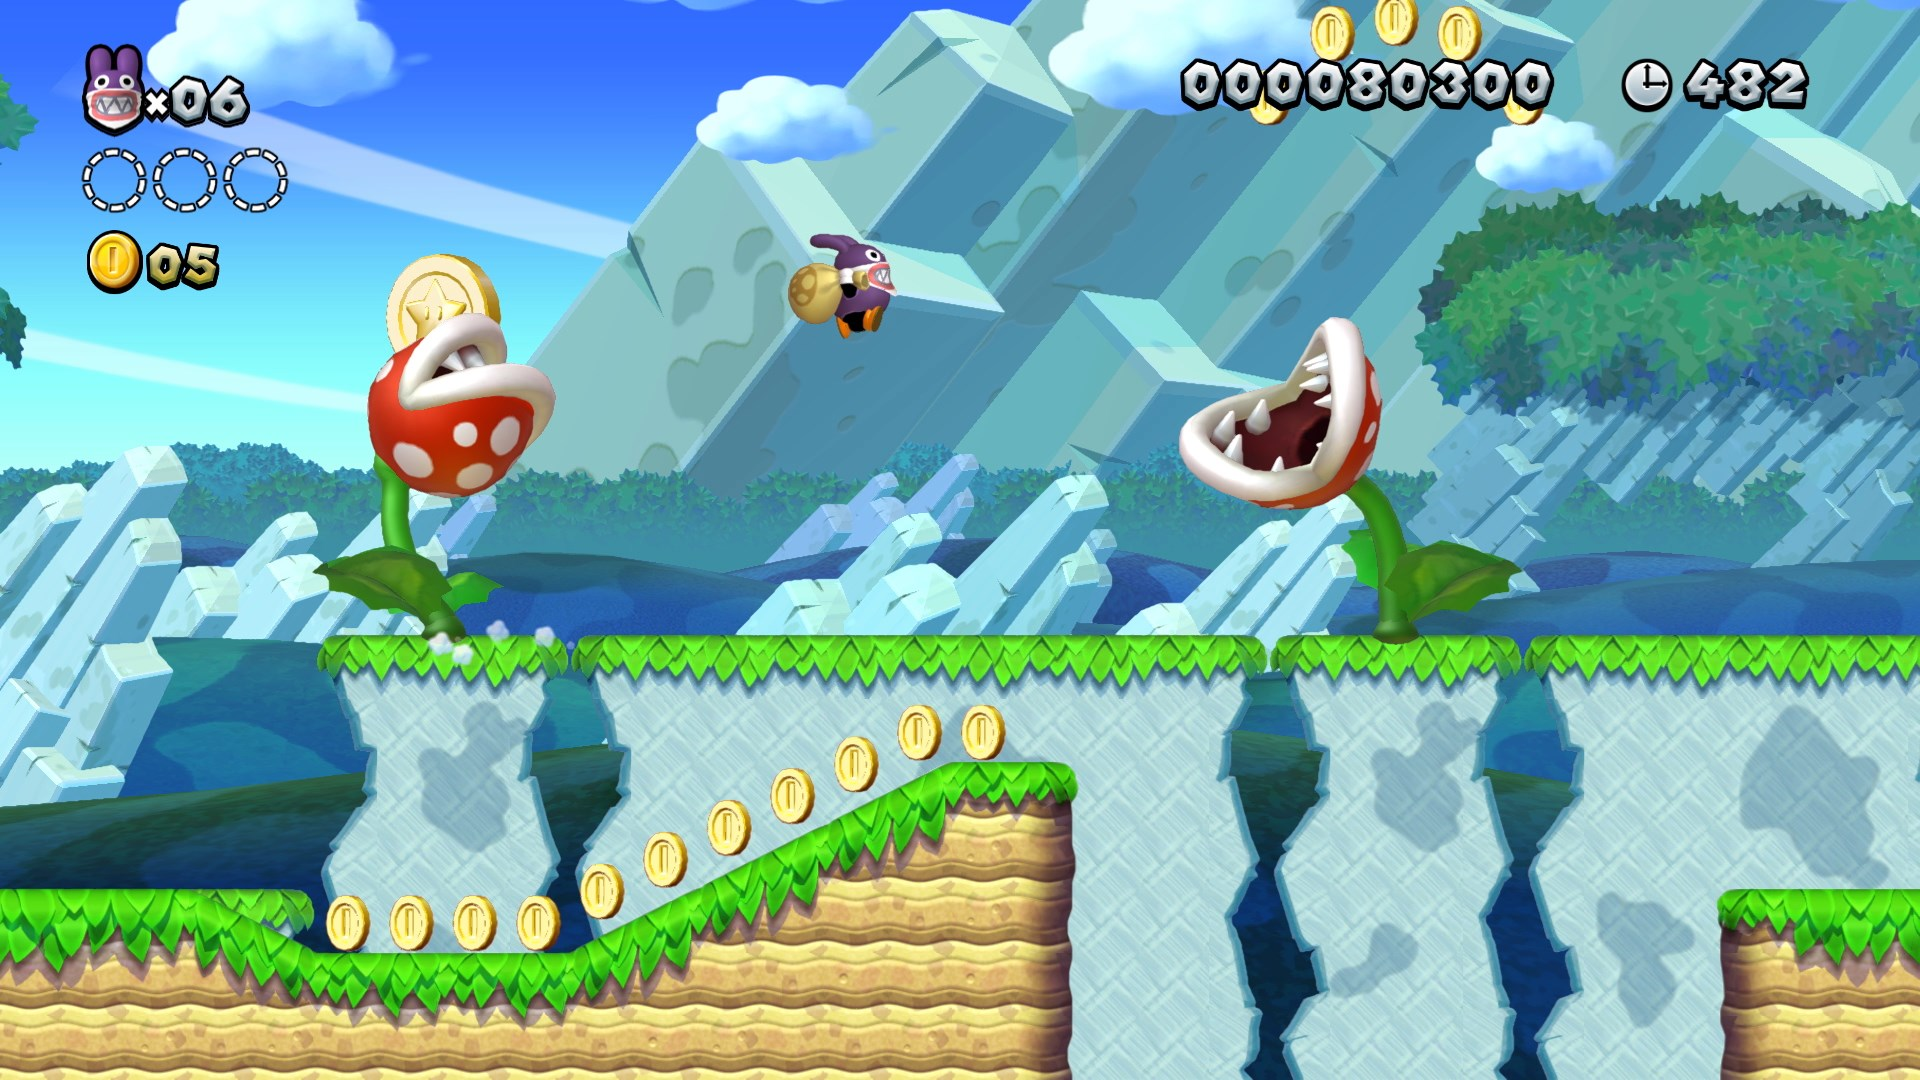 Super Mario Maker 2 review: a great sequel that makes me miss the